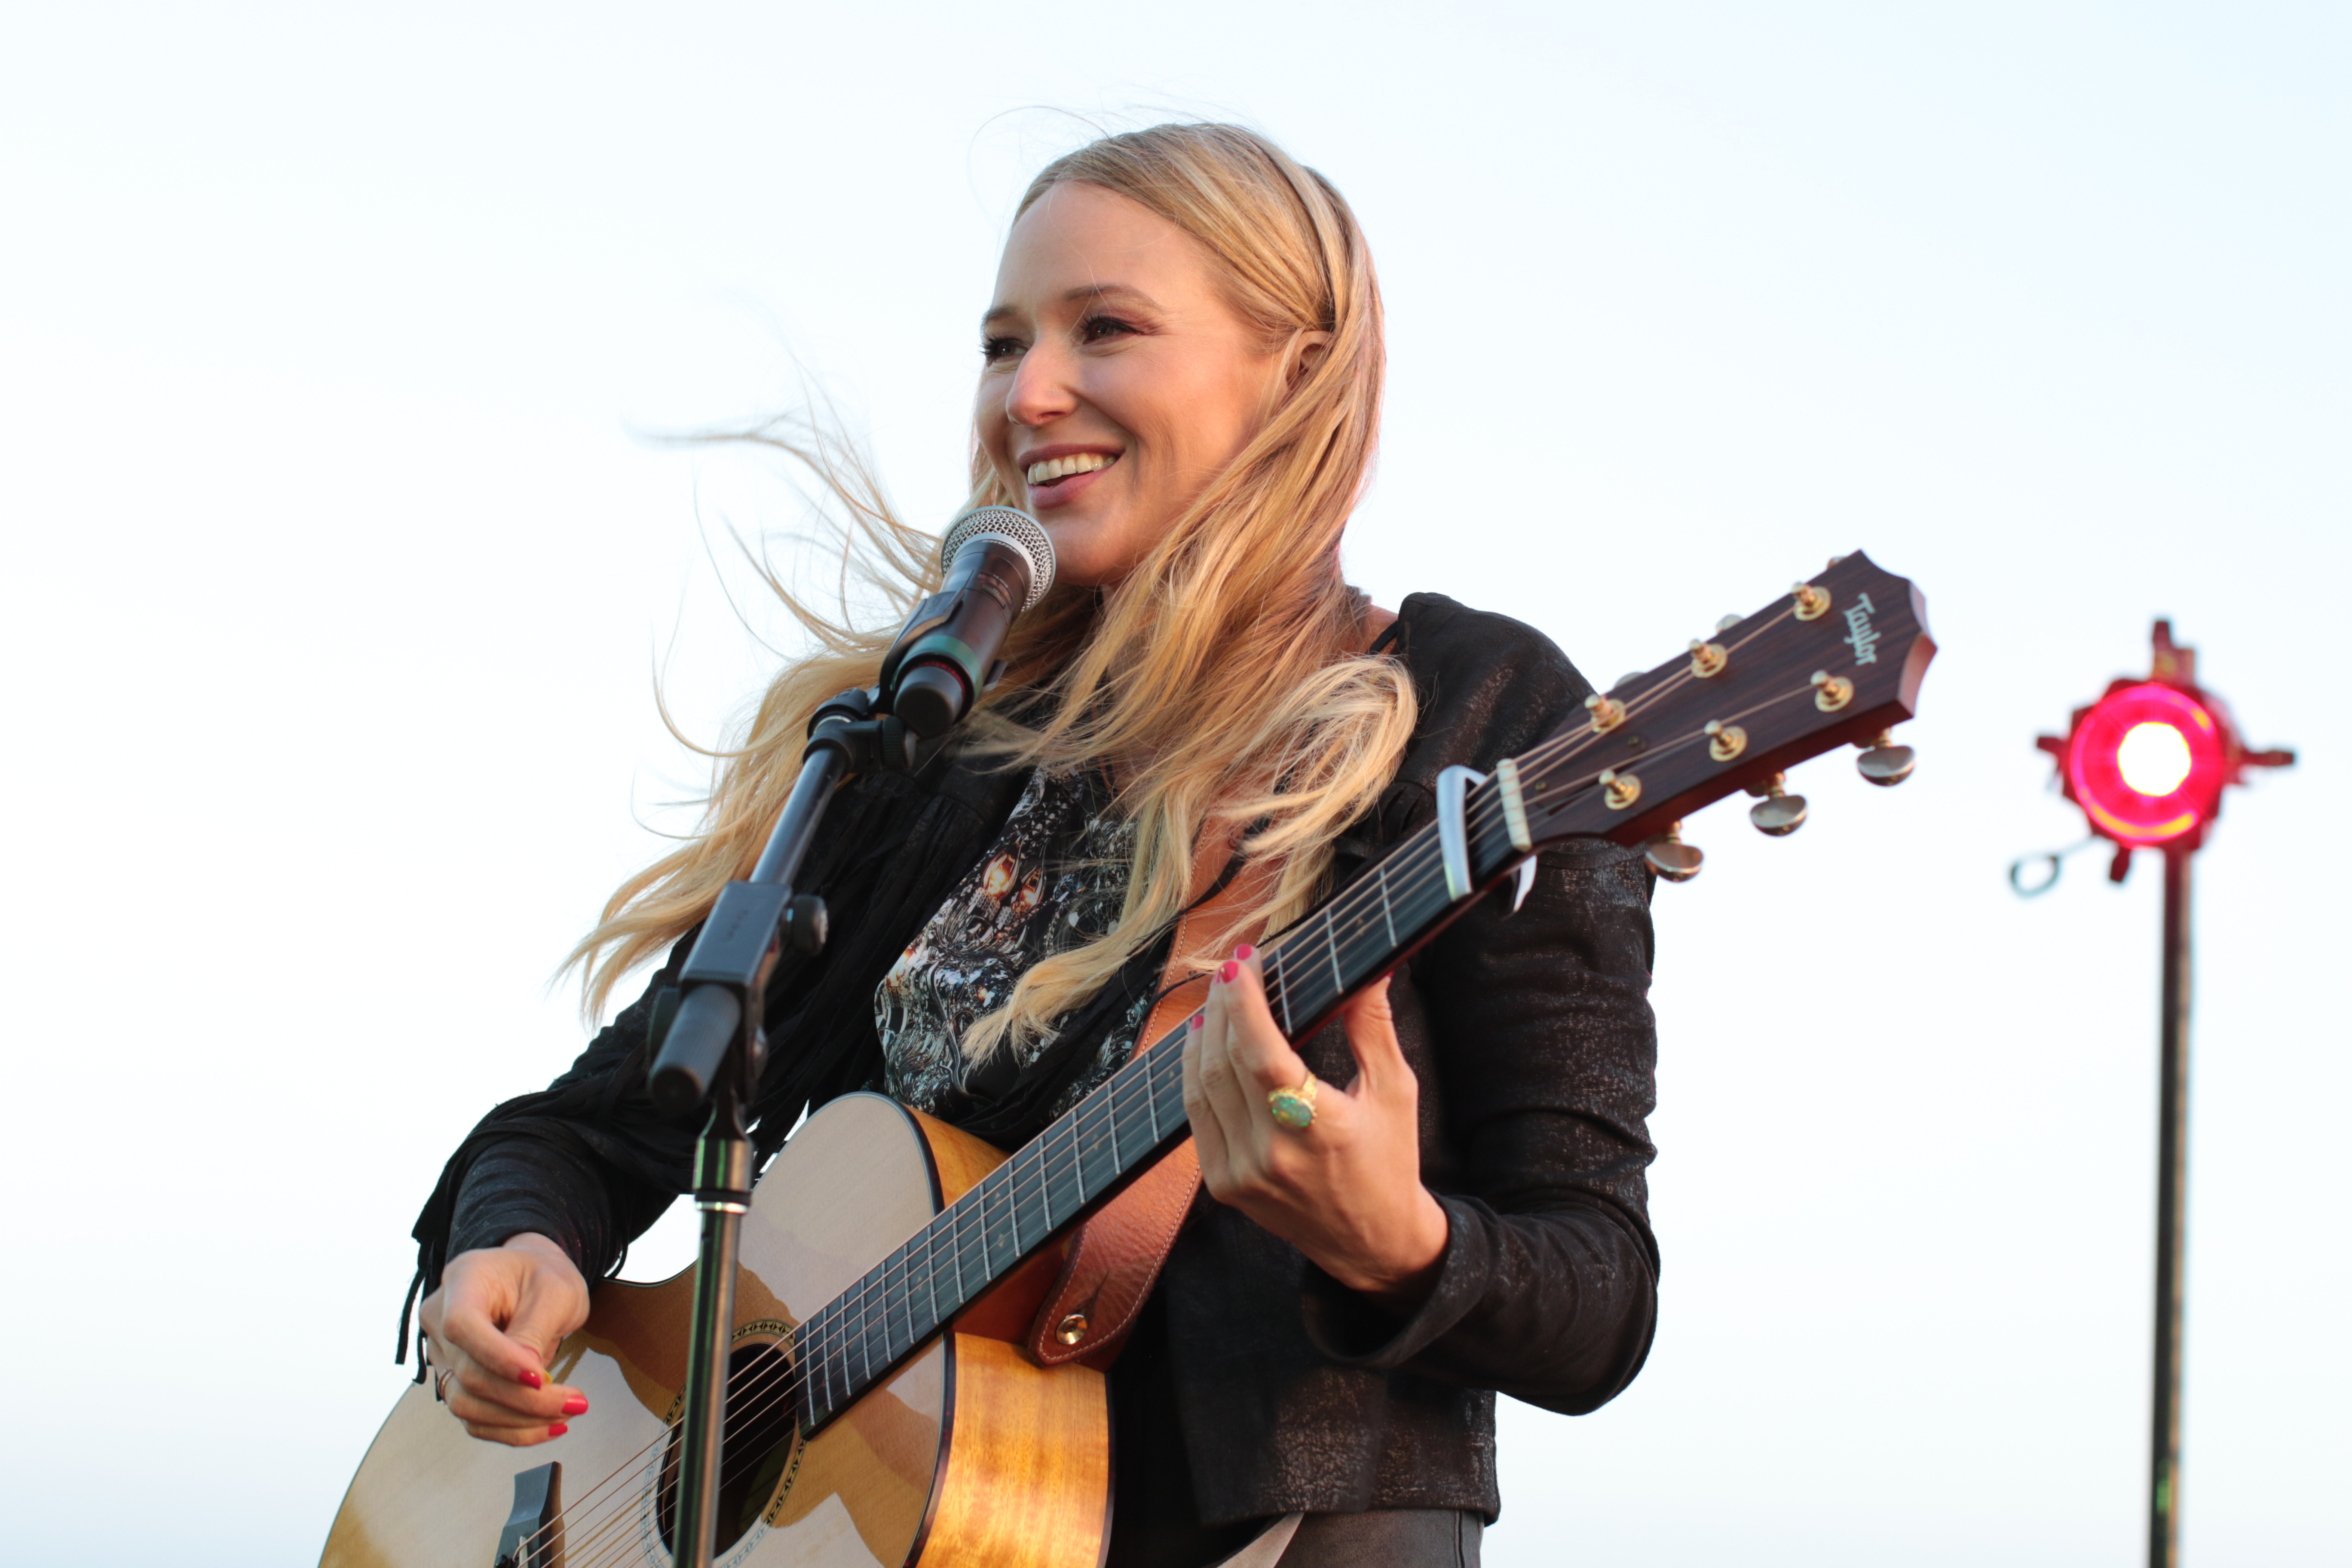 Jewel gave an unforgettable performance!